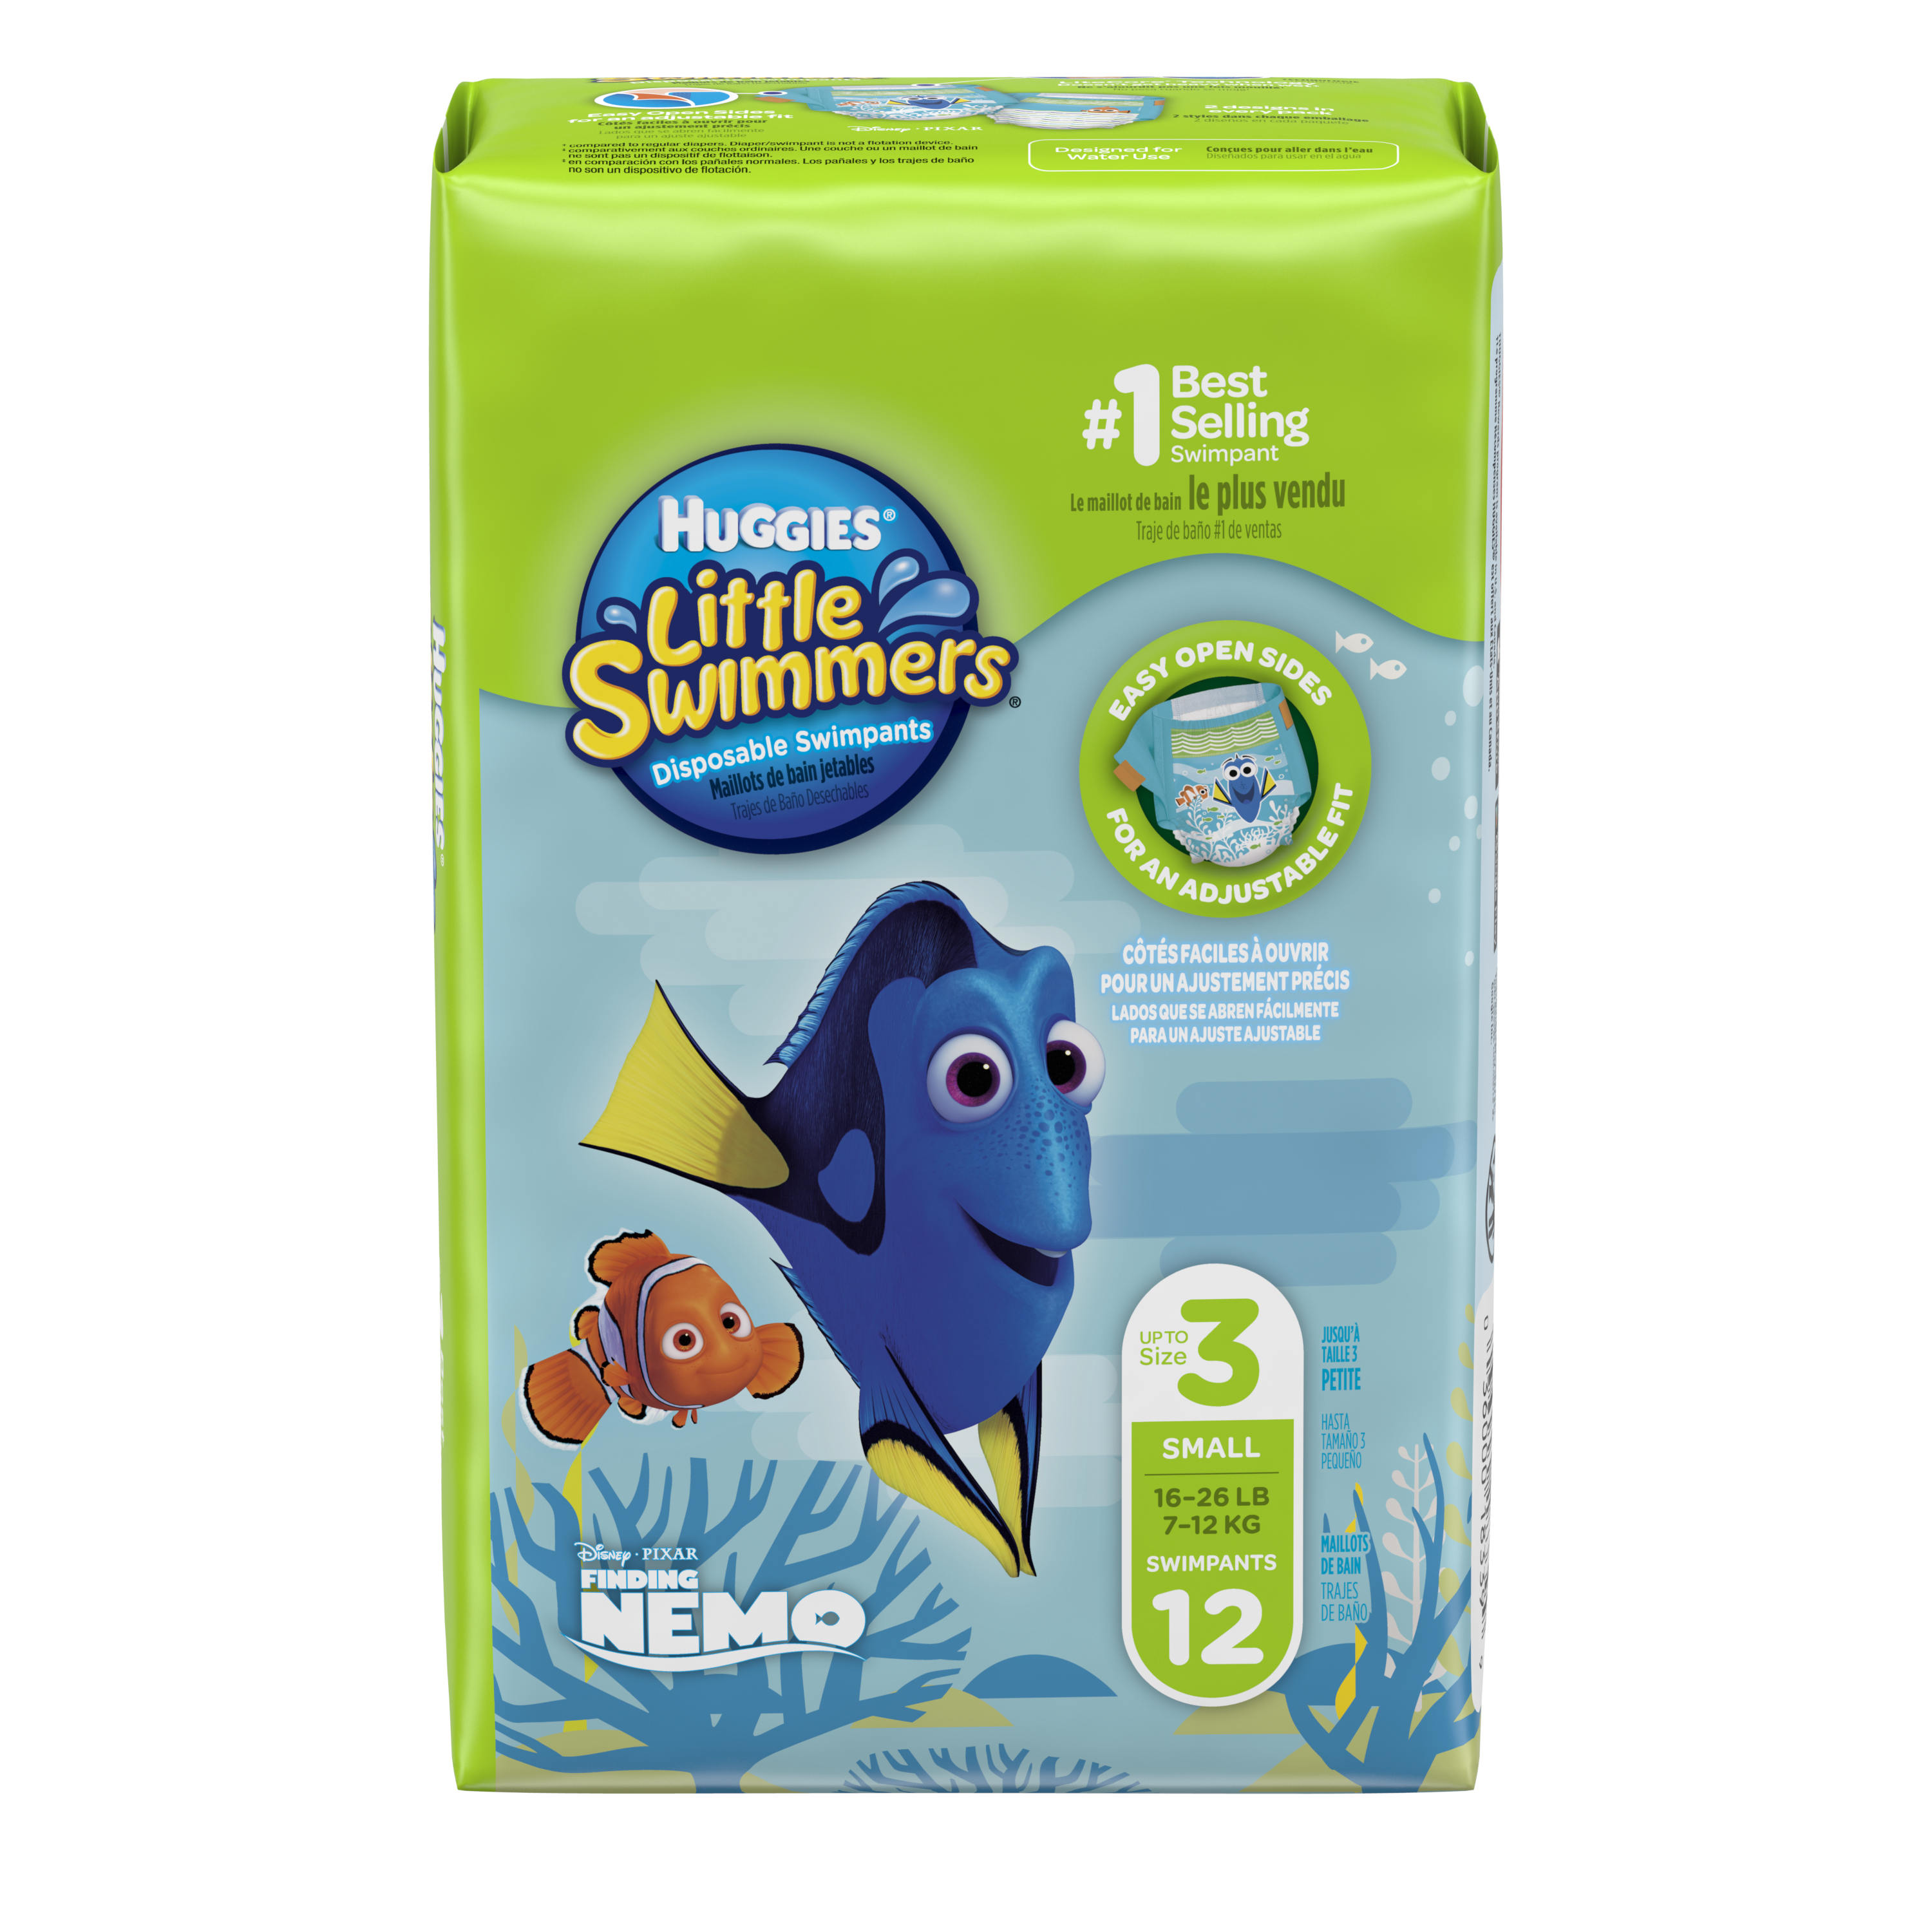 Huggies Little Swimmers Disposable Swim Diapers, Swim Pants, (Choose Size and Count)